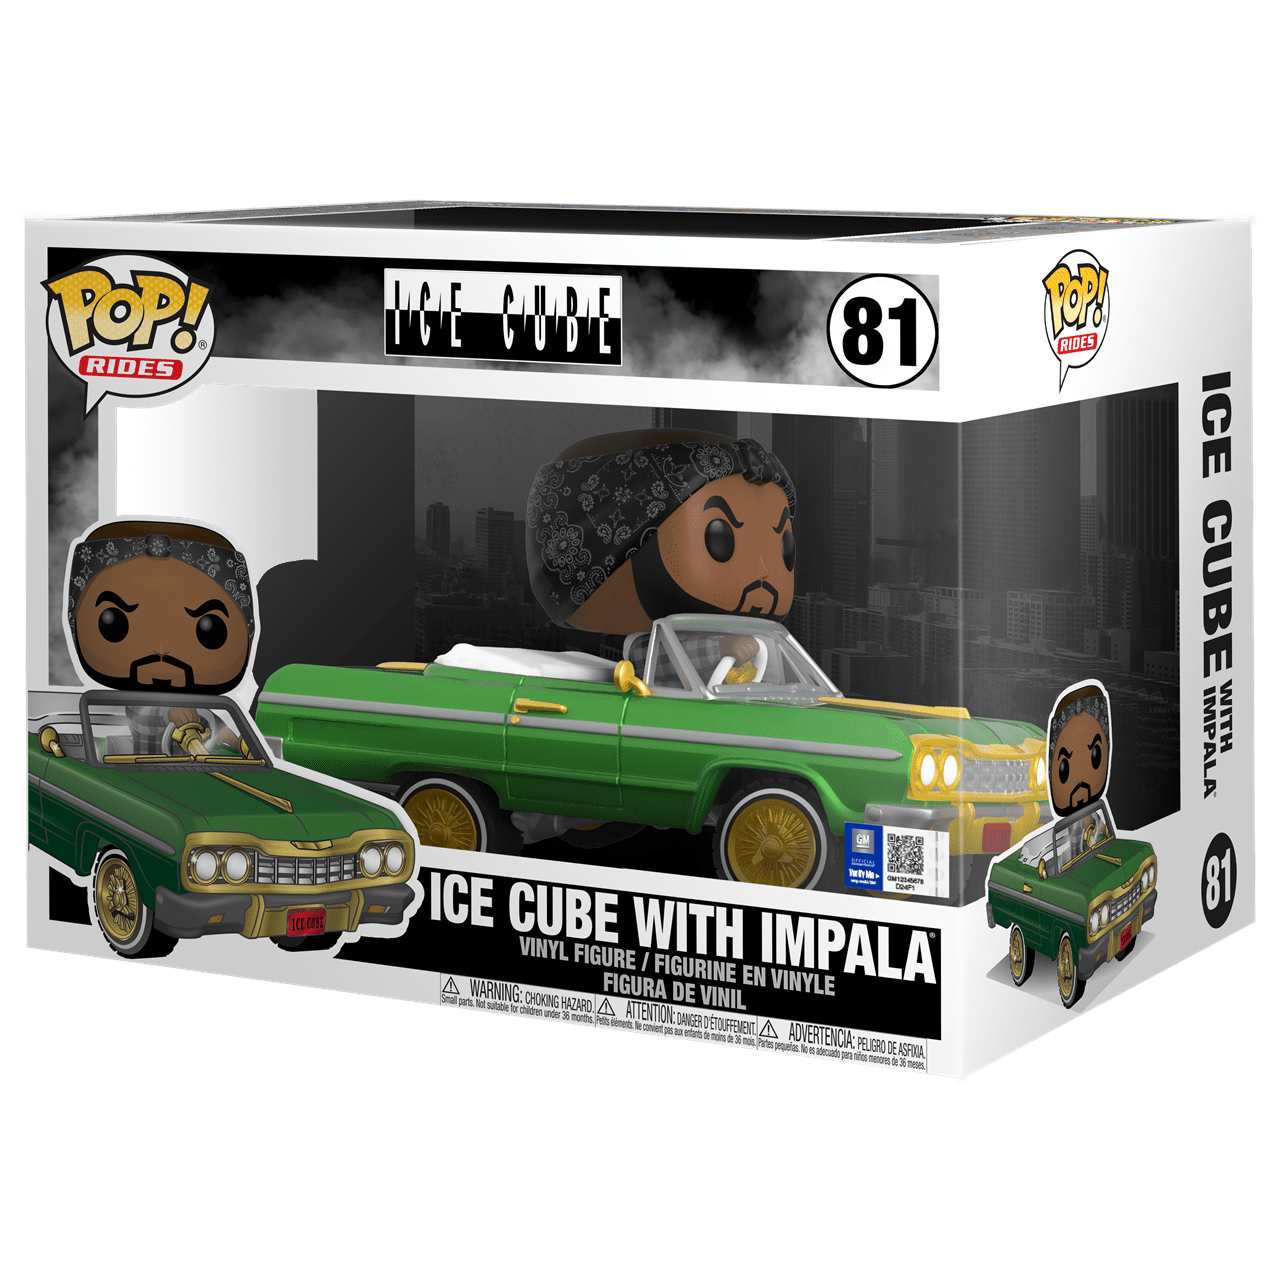 Ice Cube with Impala (81) Pop Vinyl Rides - 2